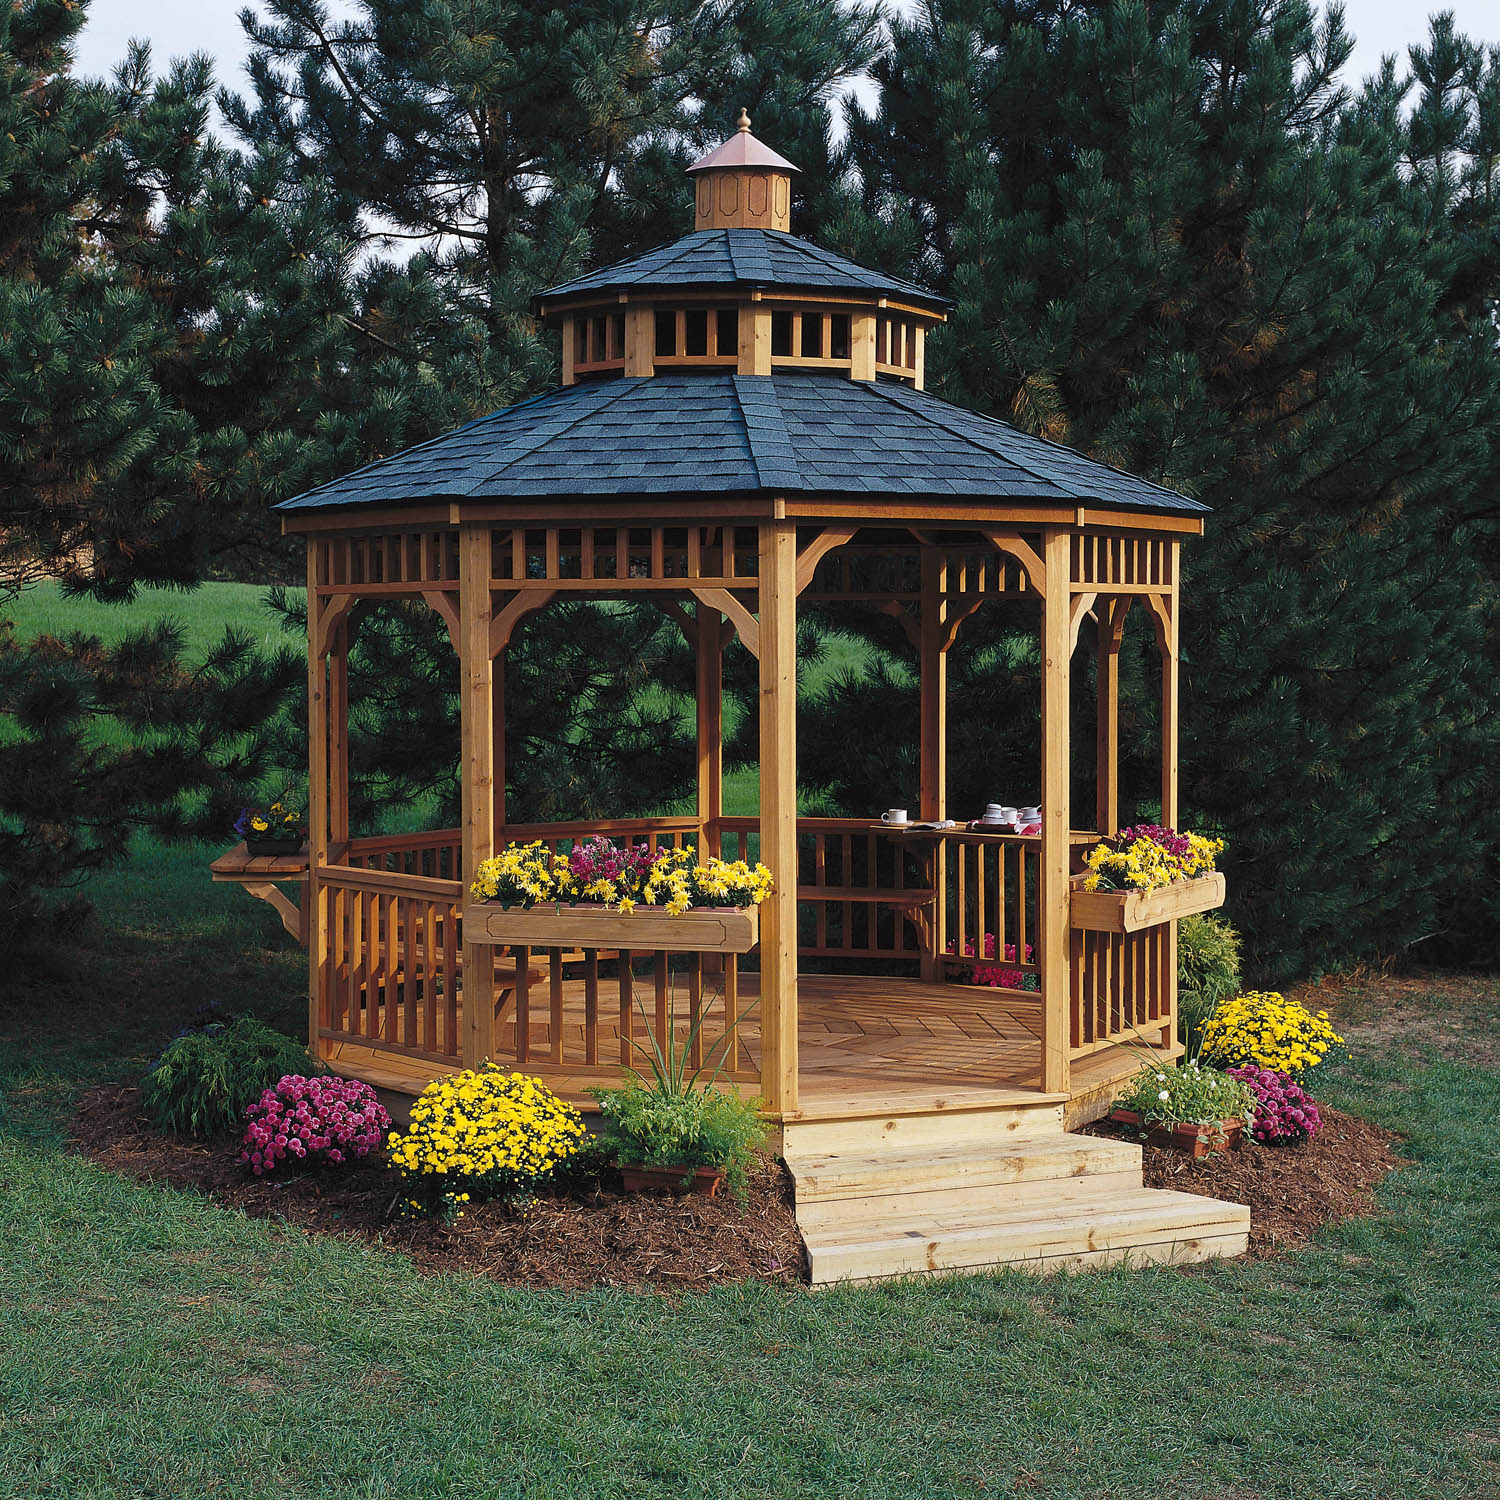 Seaside round gazebo 12ft w floor heartland industries - Build rectangular gazebo guide models ...